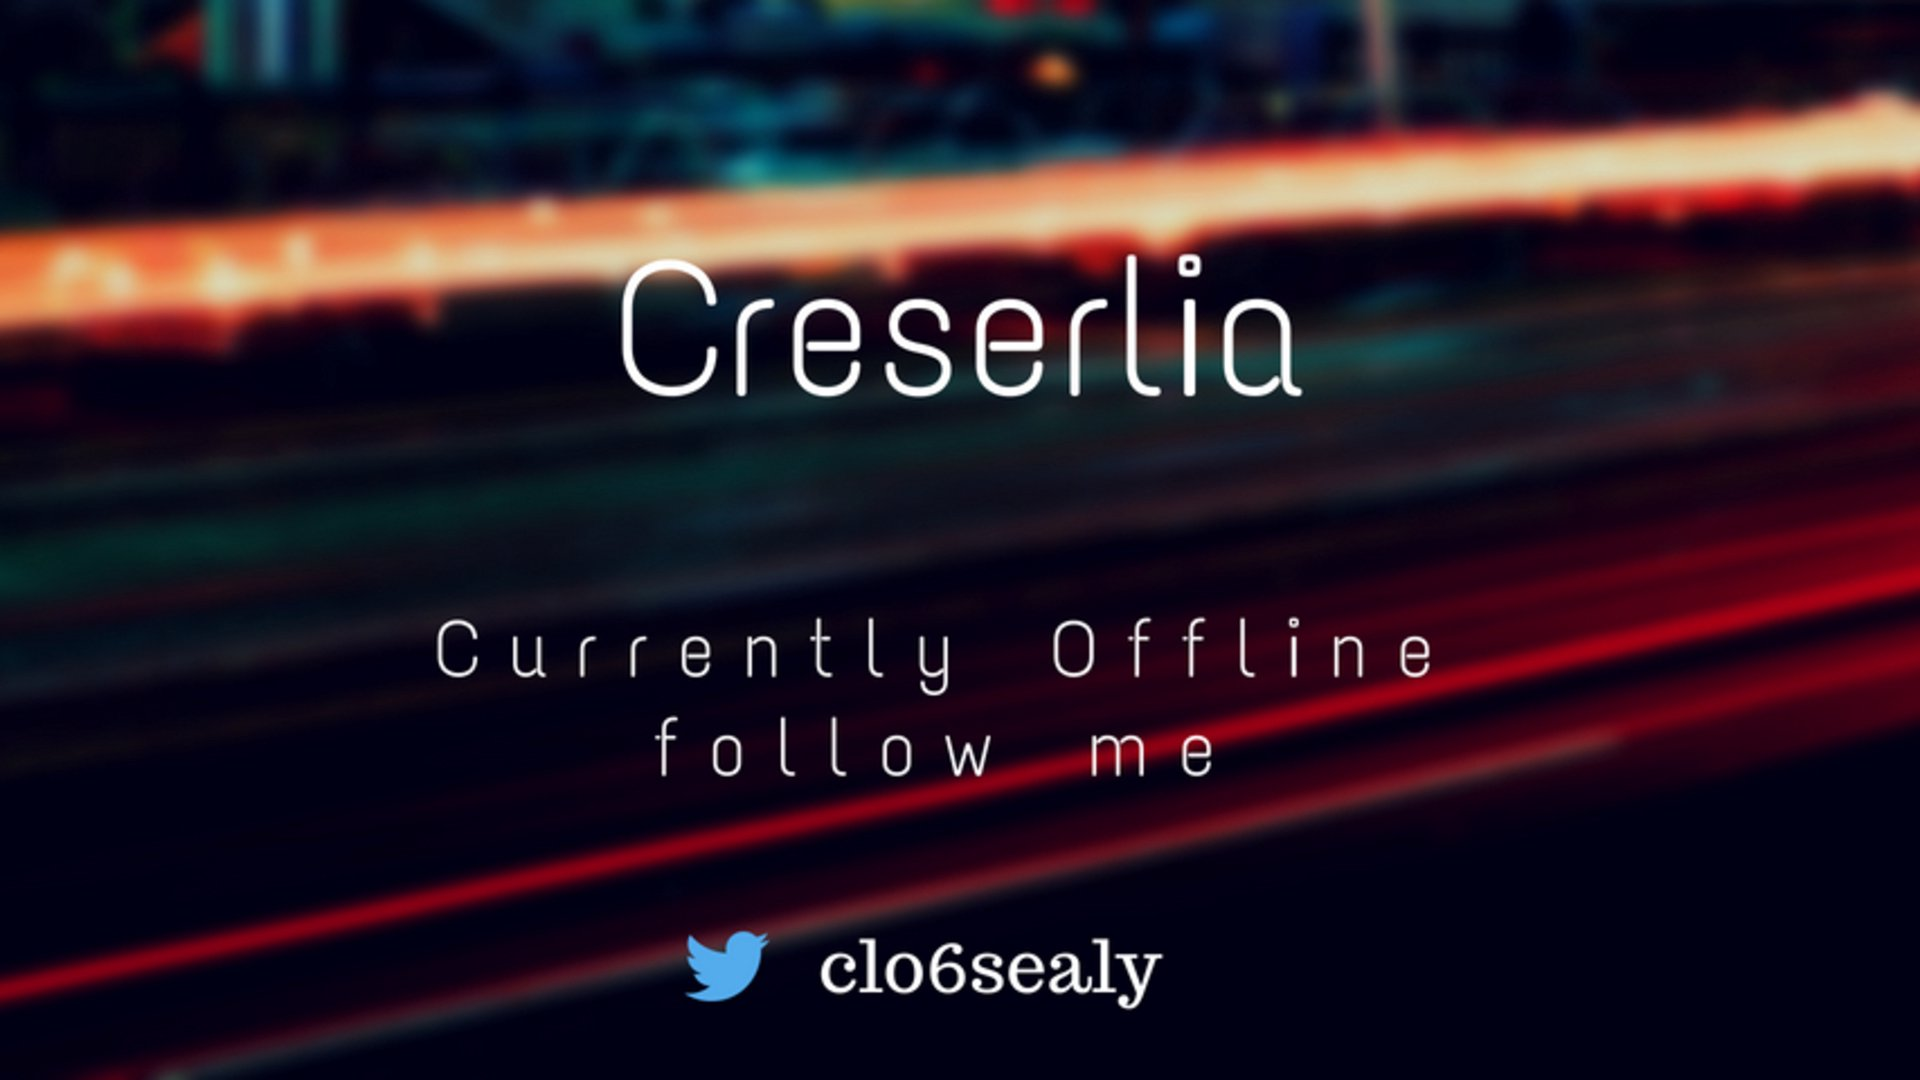 Twitch stream of Creserlia